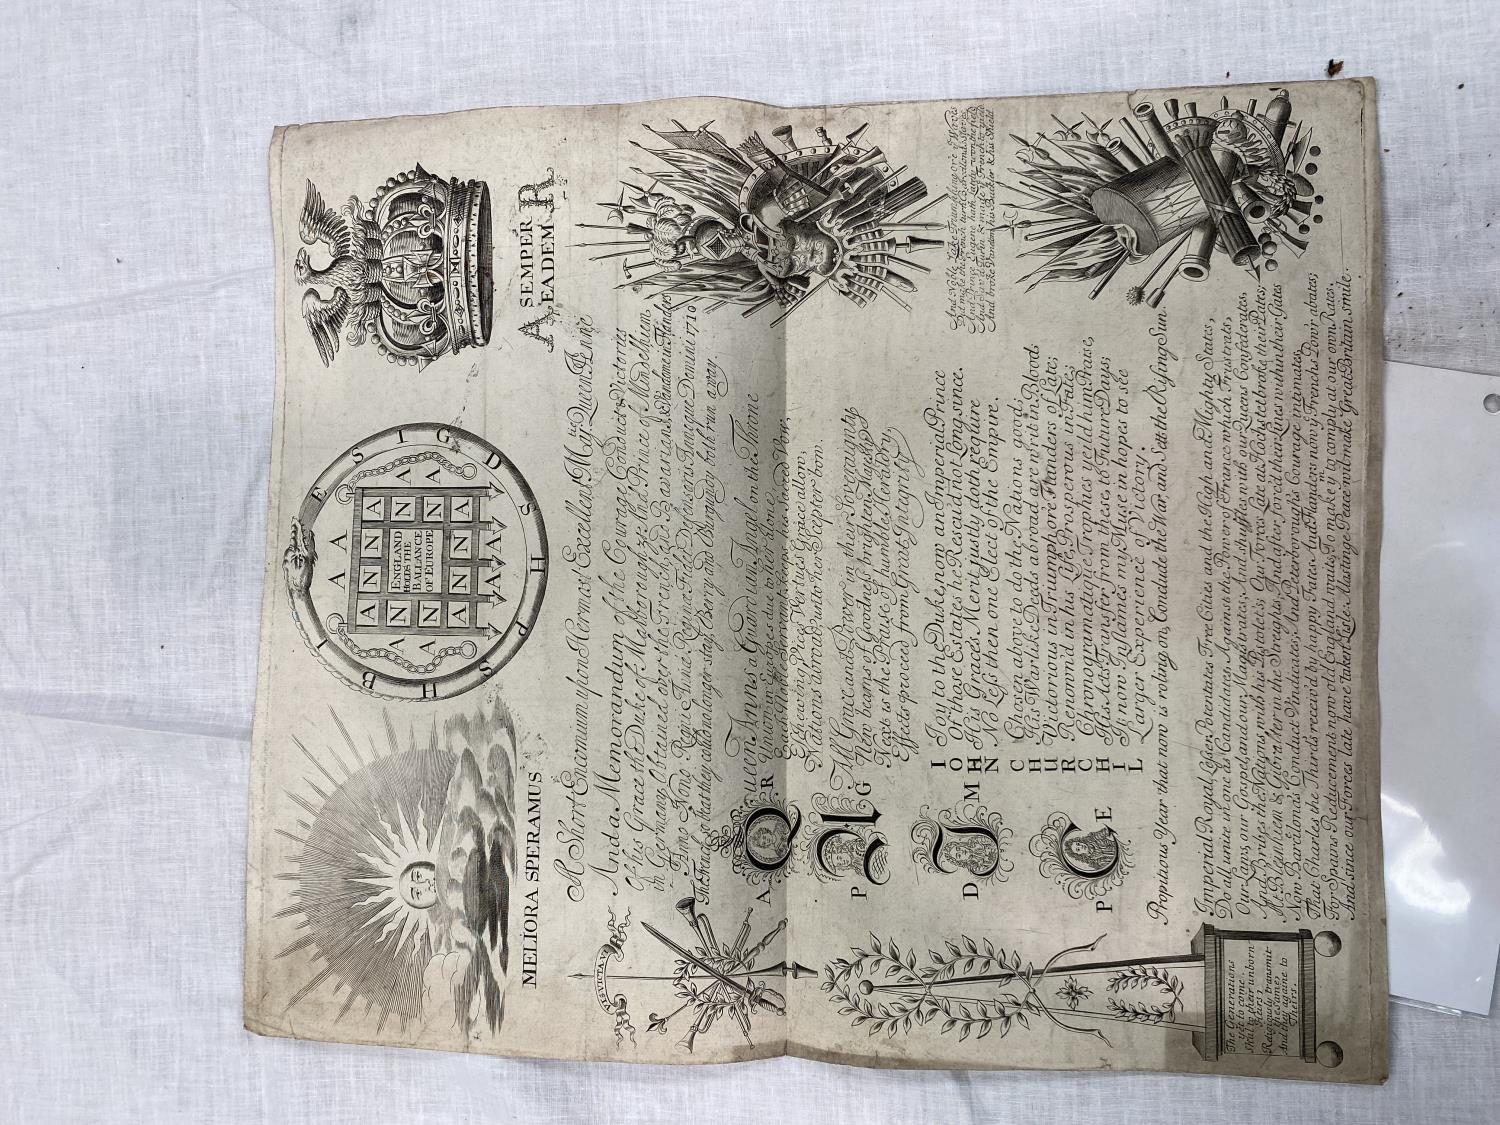 Queen Anne 1710: A Short Encomium upon Her Most Excellent Majesty Queen Anne, with a further - Image 2 of 2